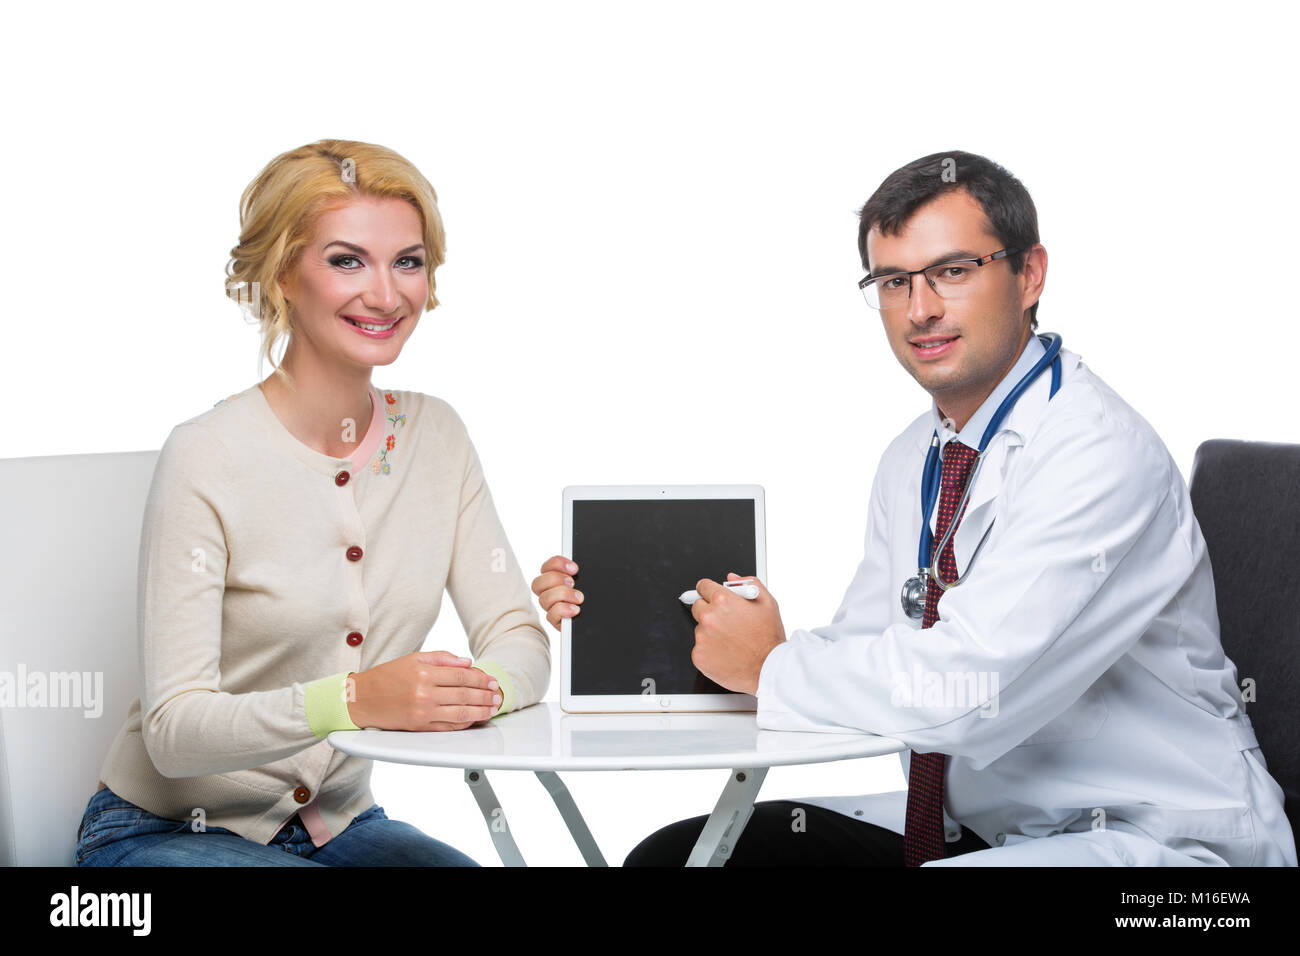 woman at doctor appointment - Stock Image